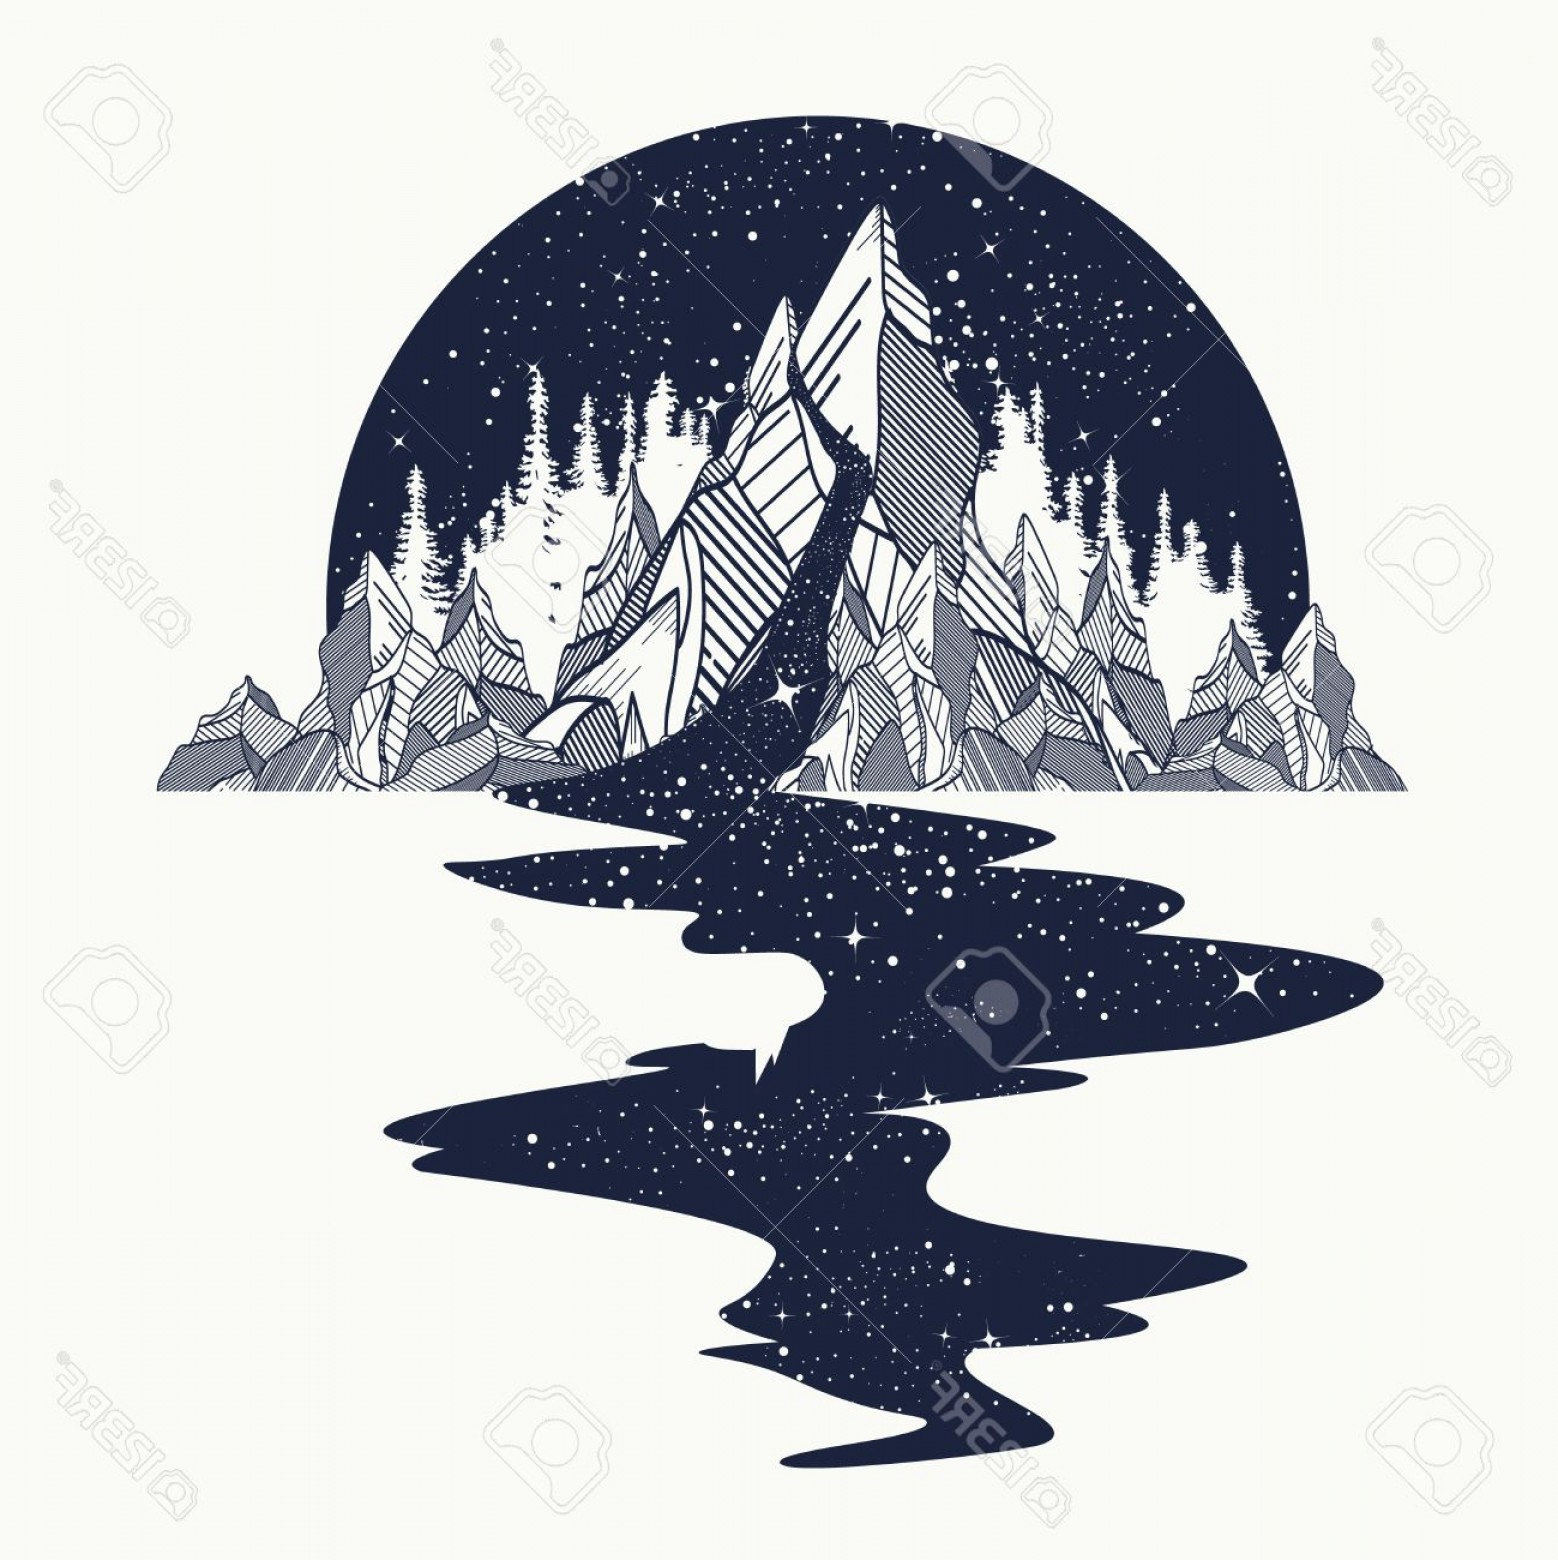 River Silhouette Vector Art: Photostock Vector River Of Stars Flows From The Mountains Tattoo Art Infinite Space Meditation Symbols Travel Tourism